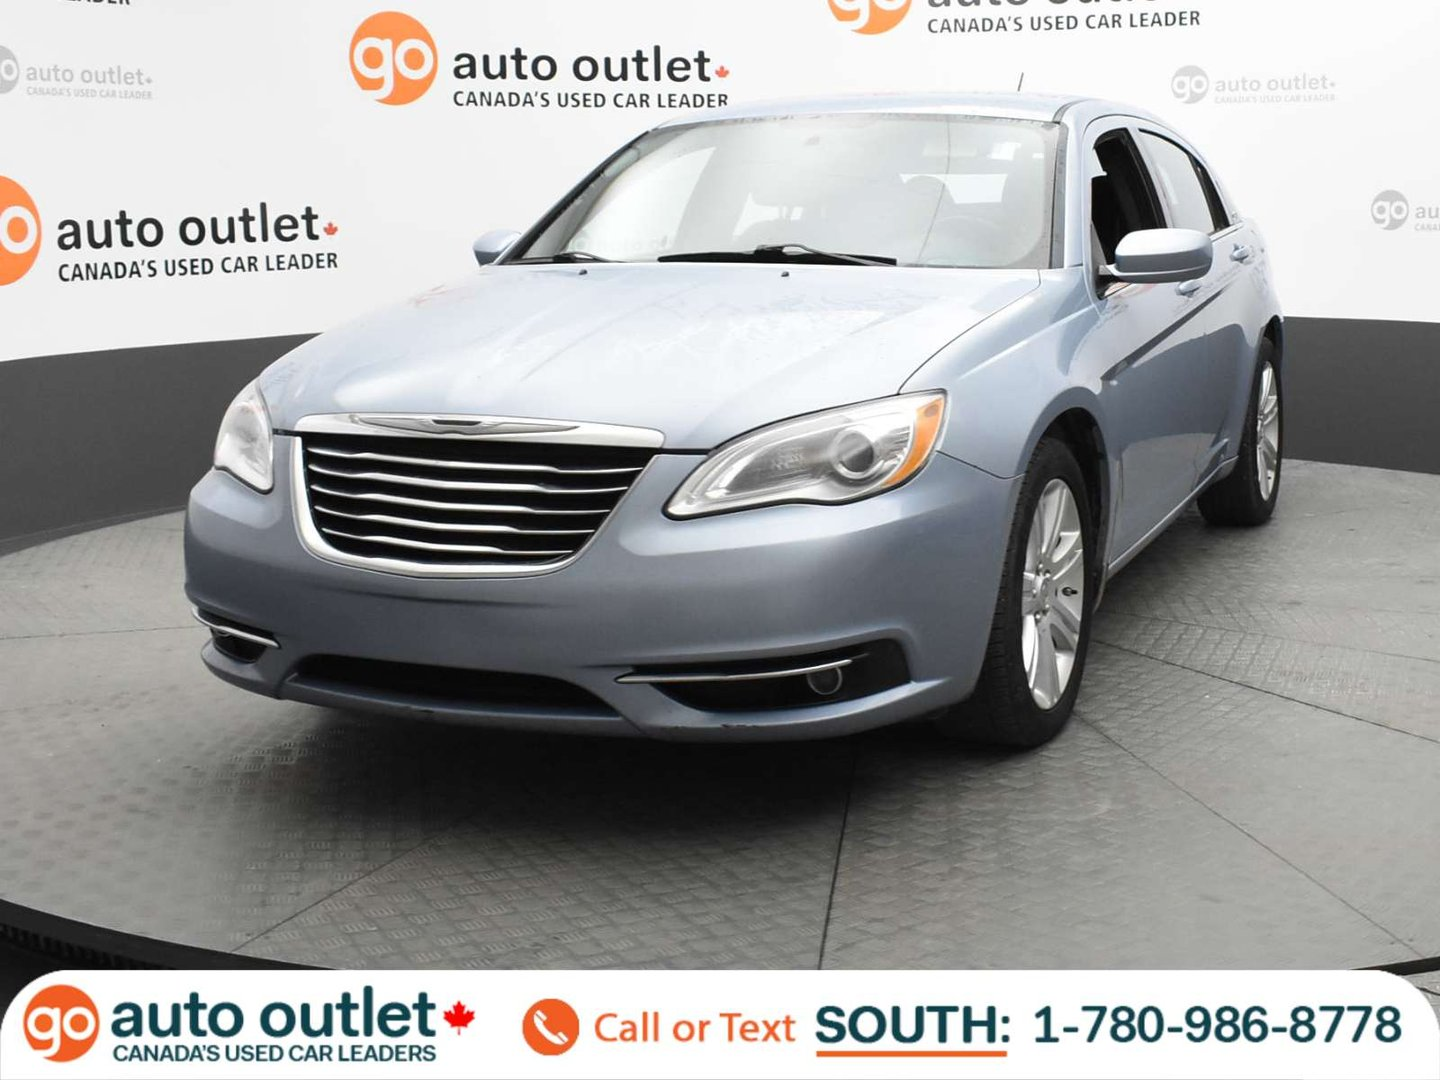 2013 Chrysler 200 Touring for sale in Leduc, Alberta